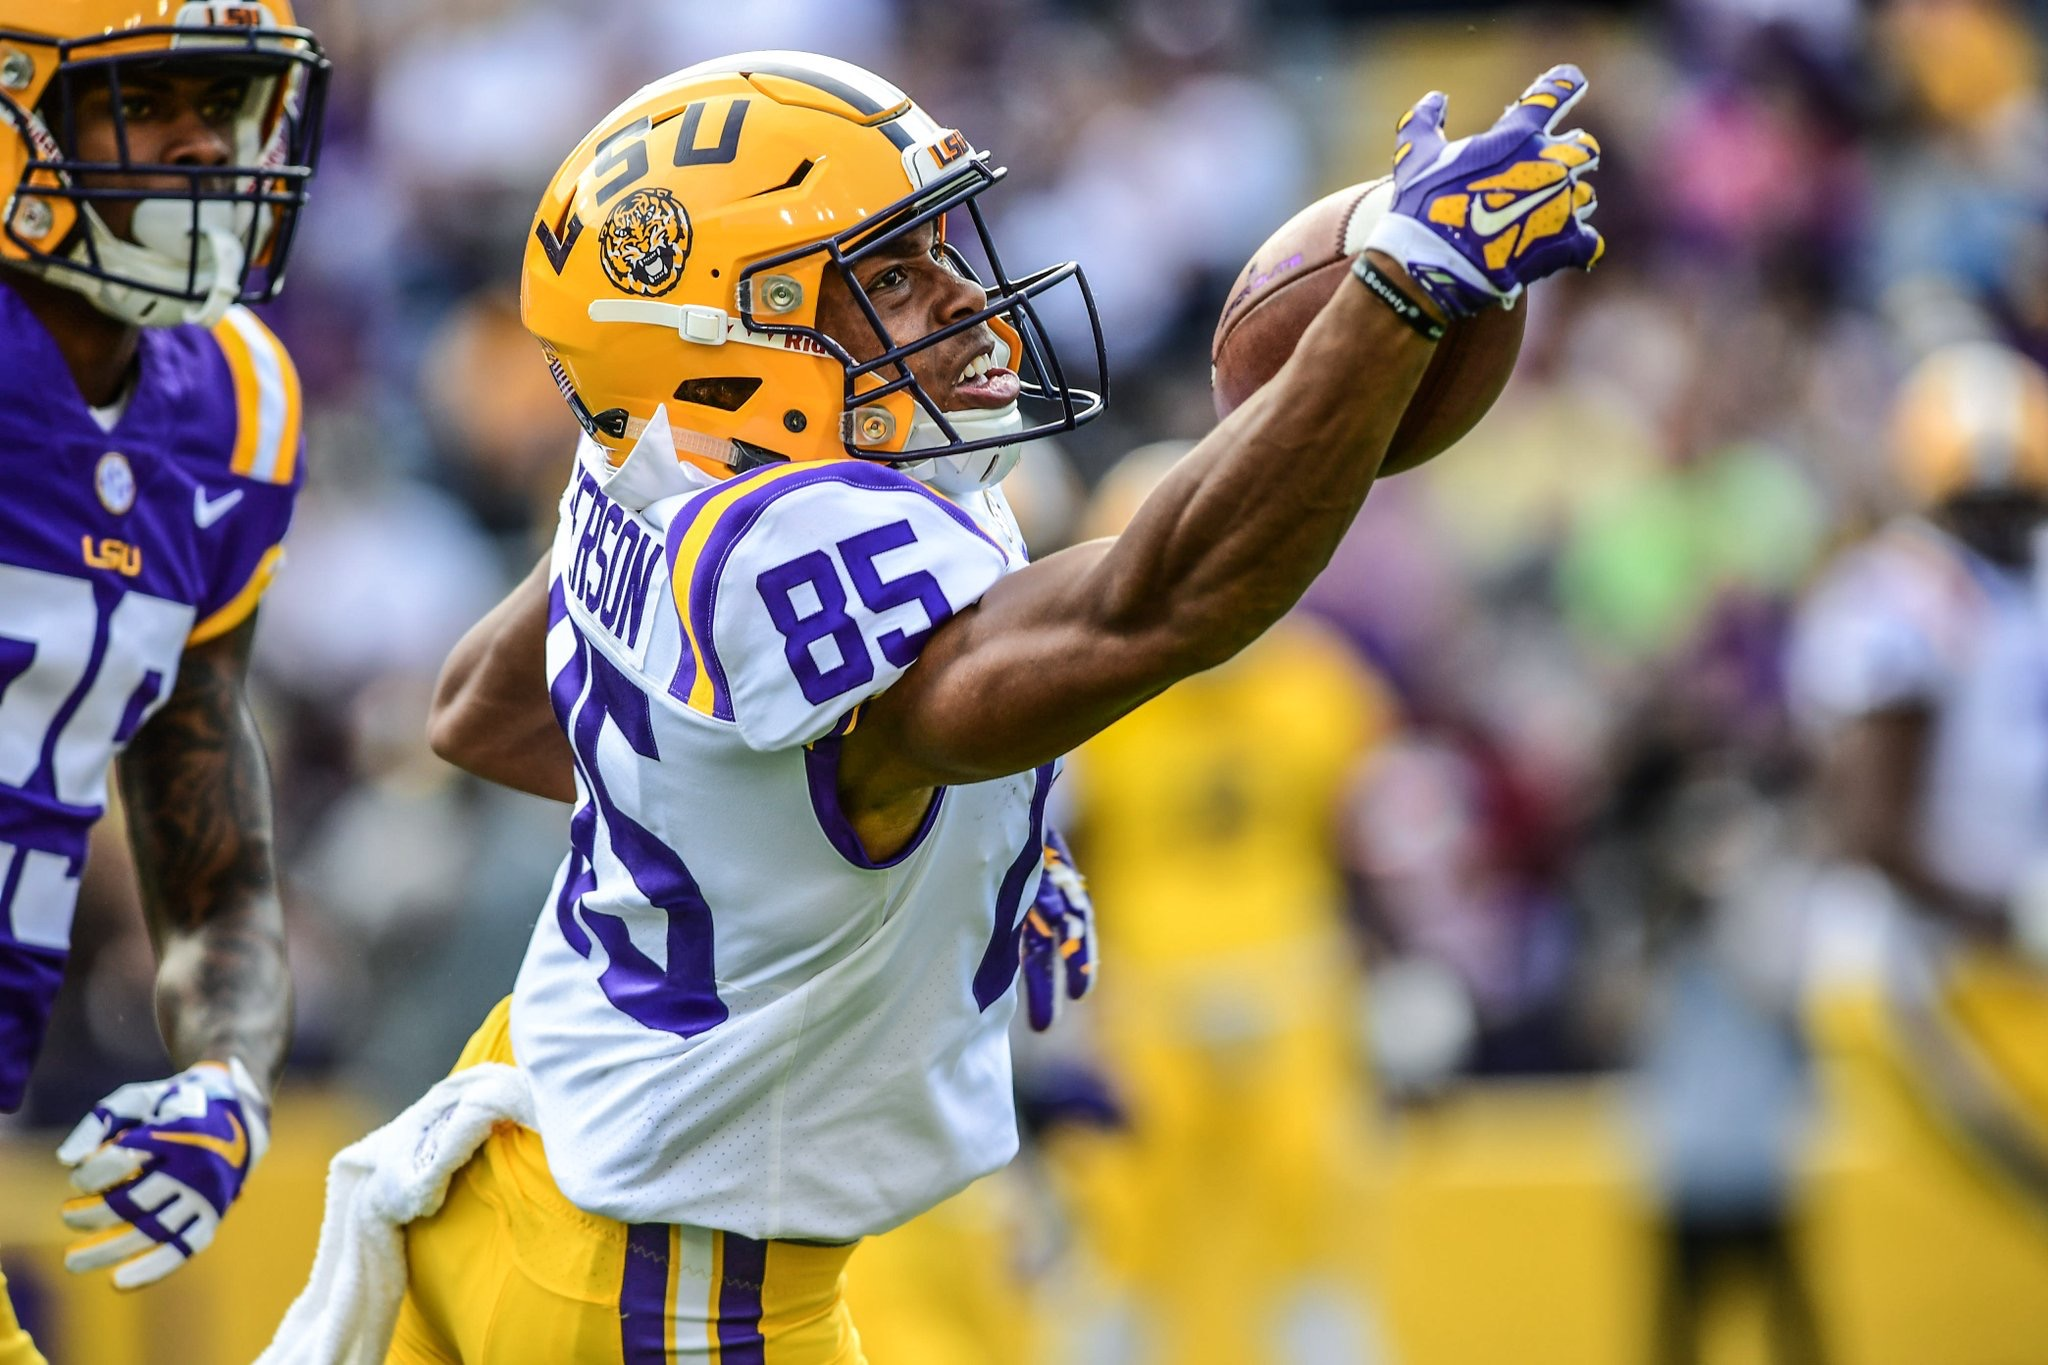 Purple defeats White in annual L-Club Spring Game